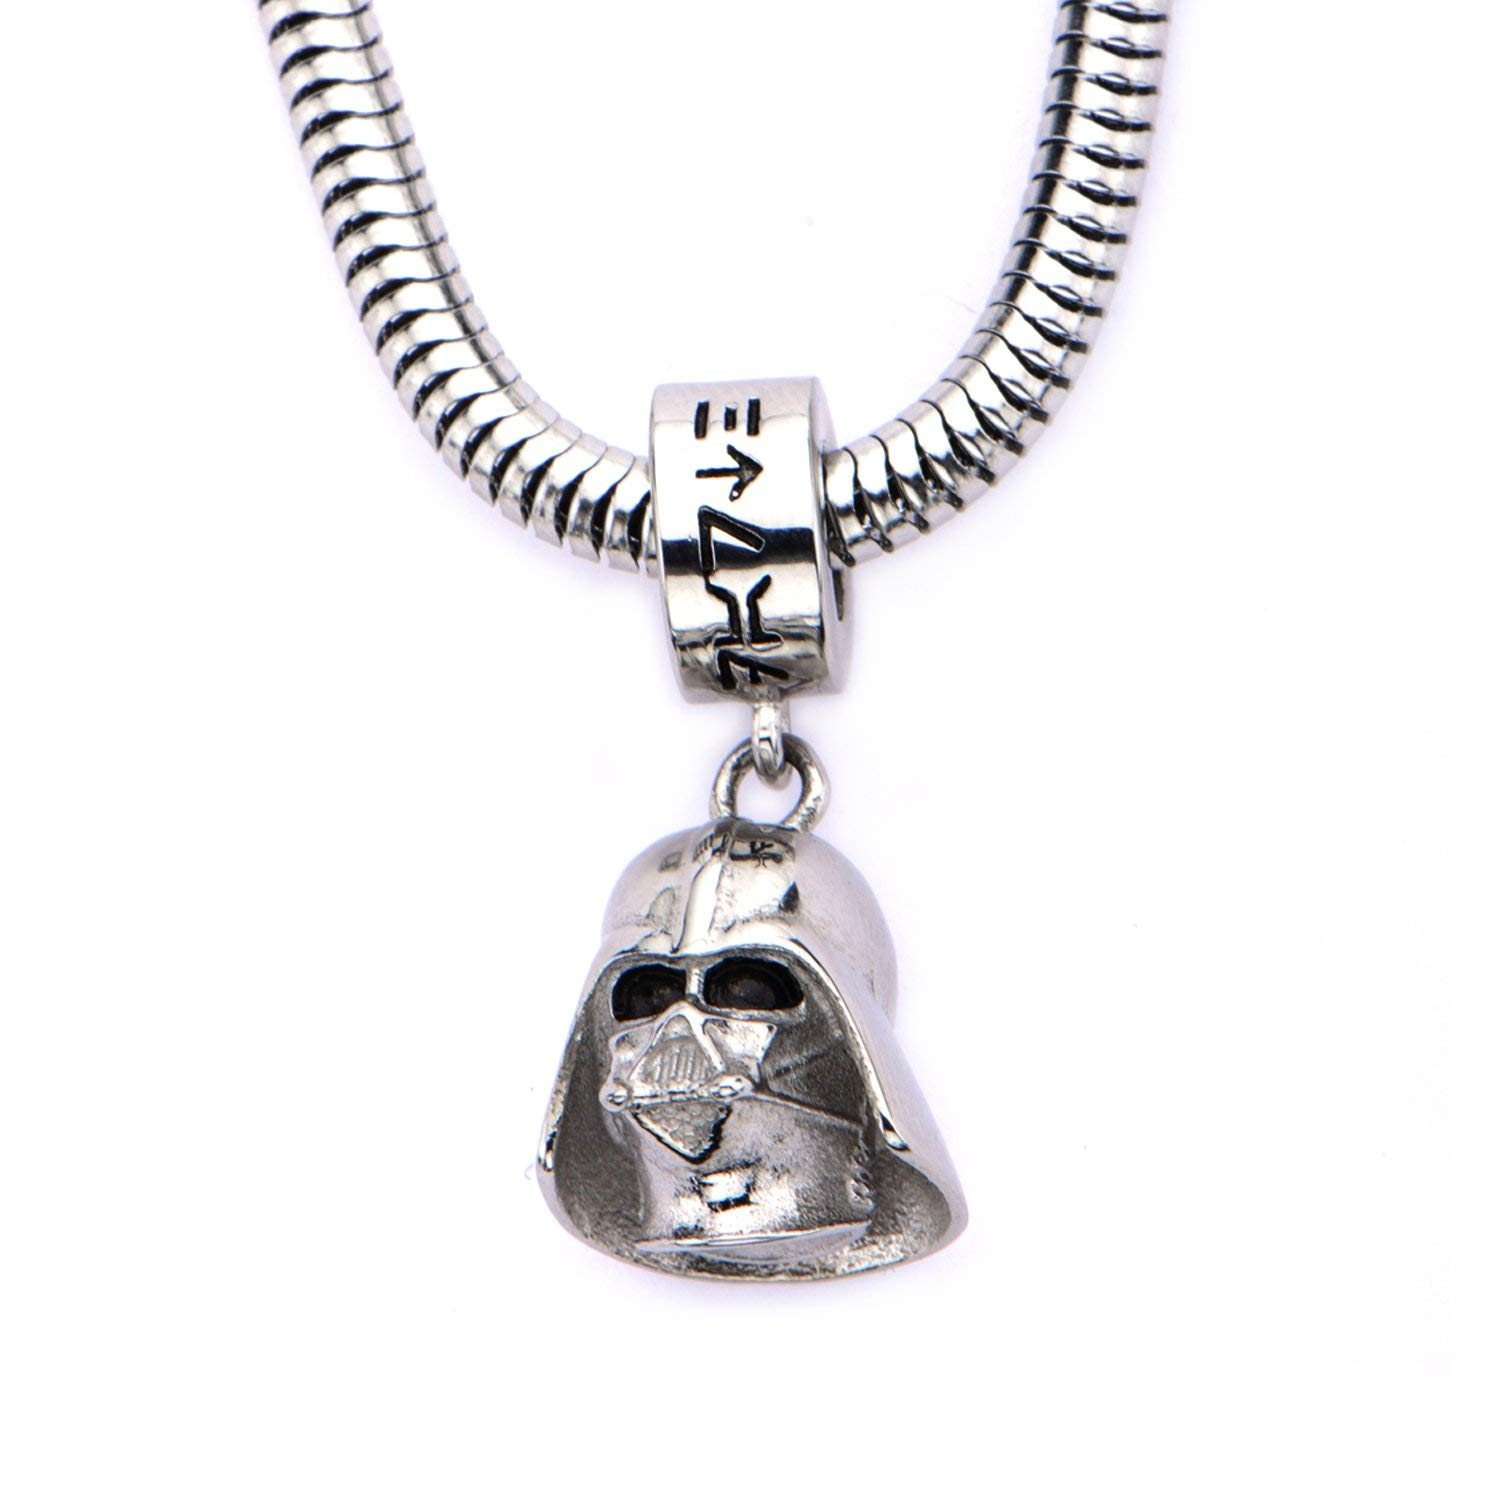 Body Vibe x Star Wars Darth Vader Charm Necklace on Amazon